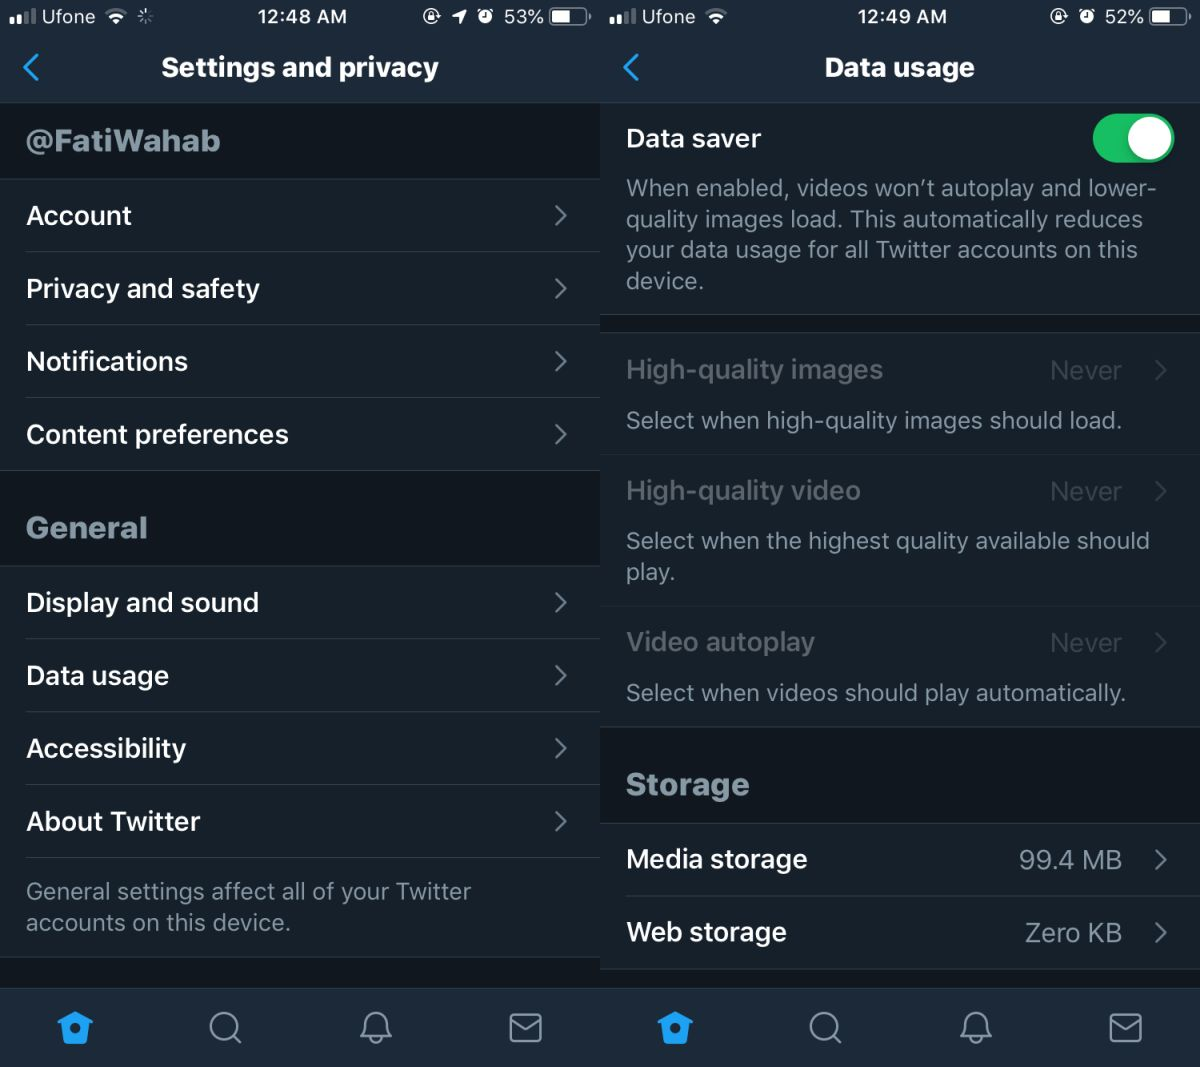 how to enable the data saver in twitter apps How To Enable The Data Saver In Twitter Apps